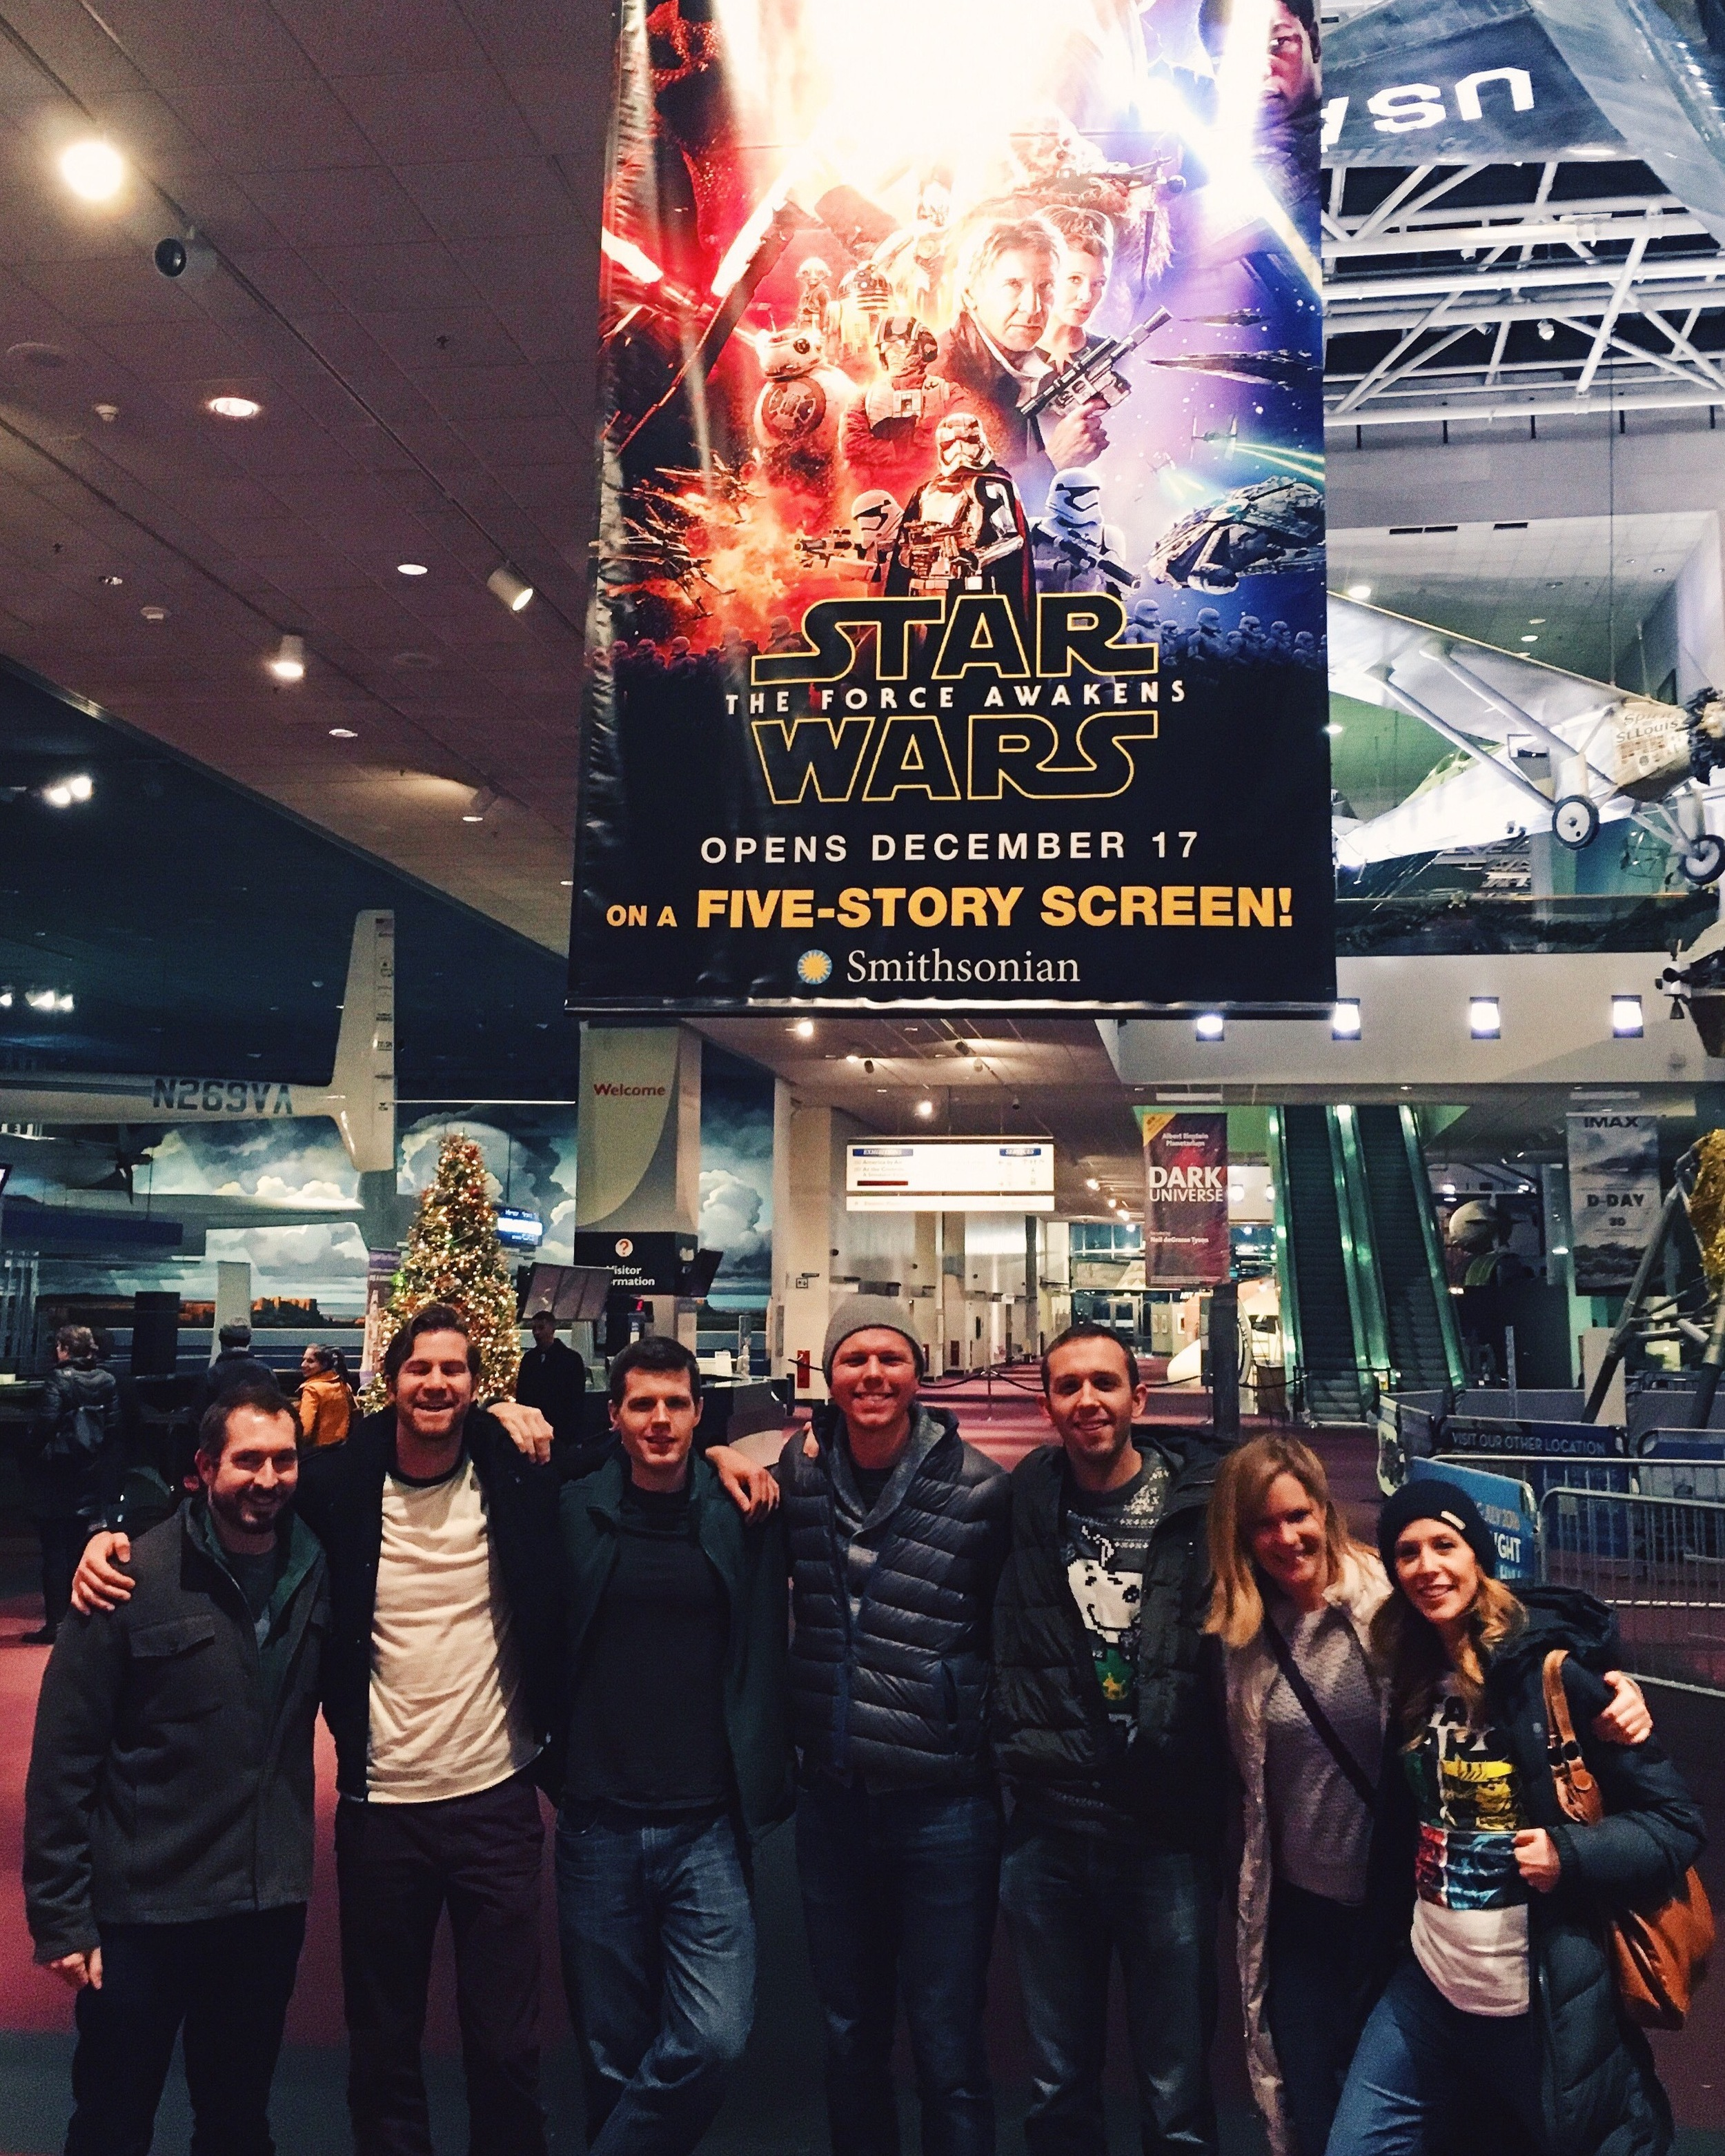 Star Wars: The Force Awakens midnight premier at the Air & Space Museum ( Instagram )